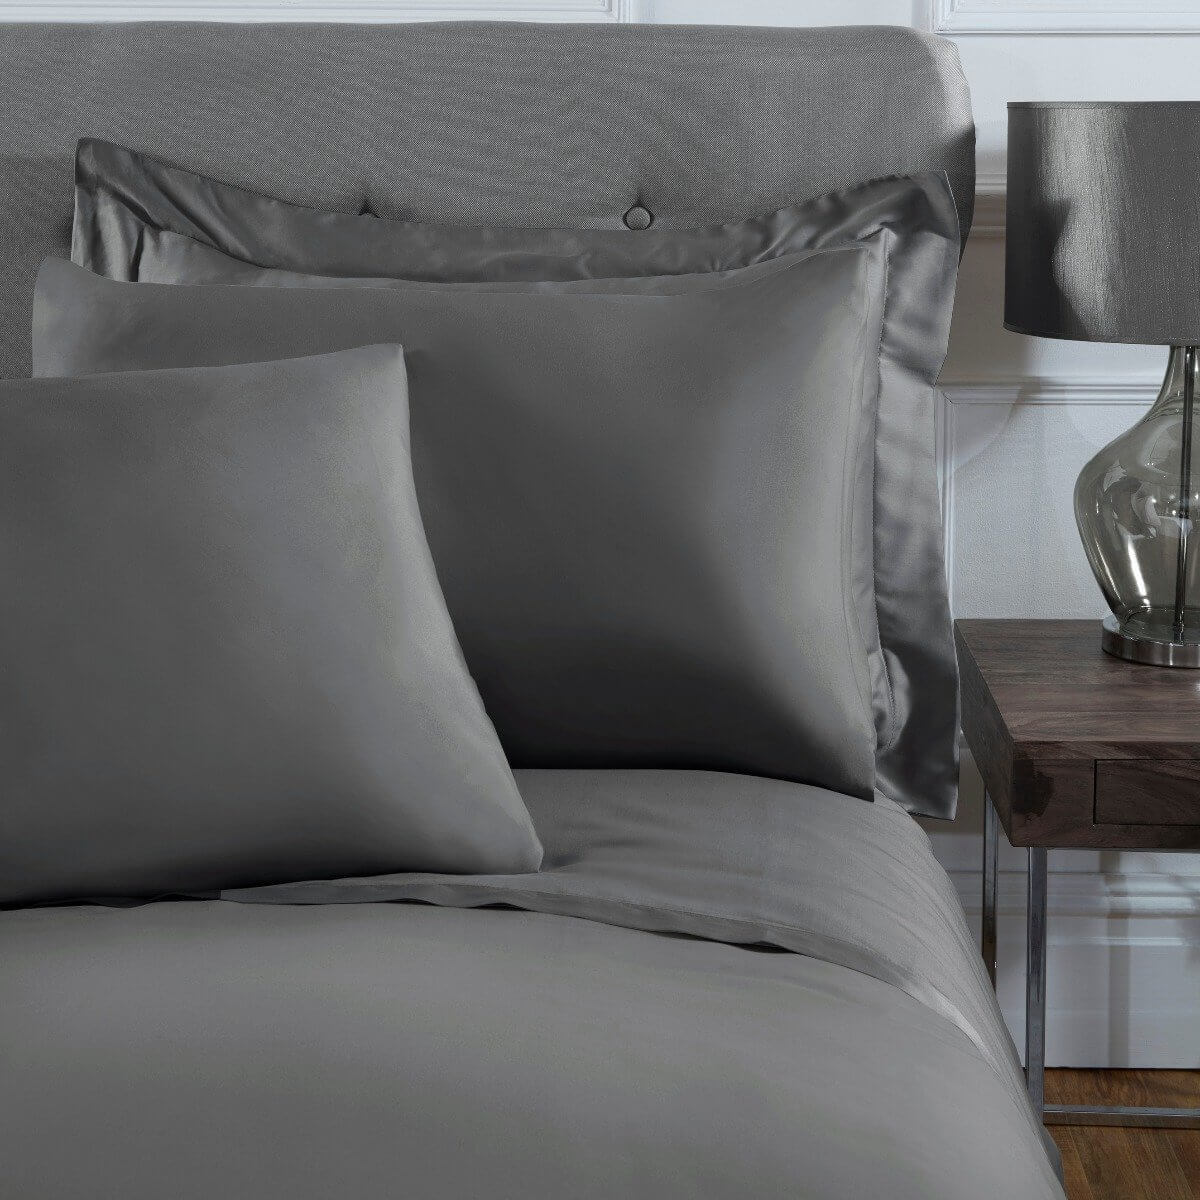 Luxury 100% Cotton Sateen 300 Thread Count Anti-Allergy Housewife Pillowcase Pair - Charcoal